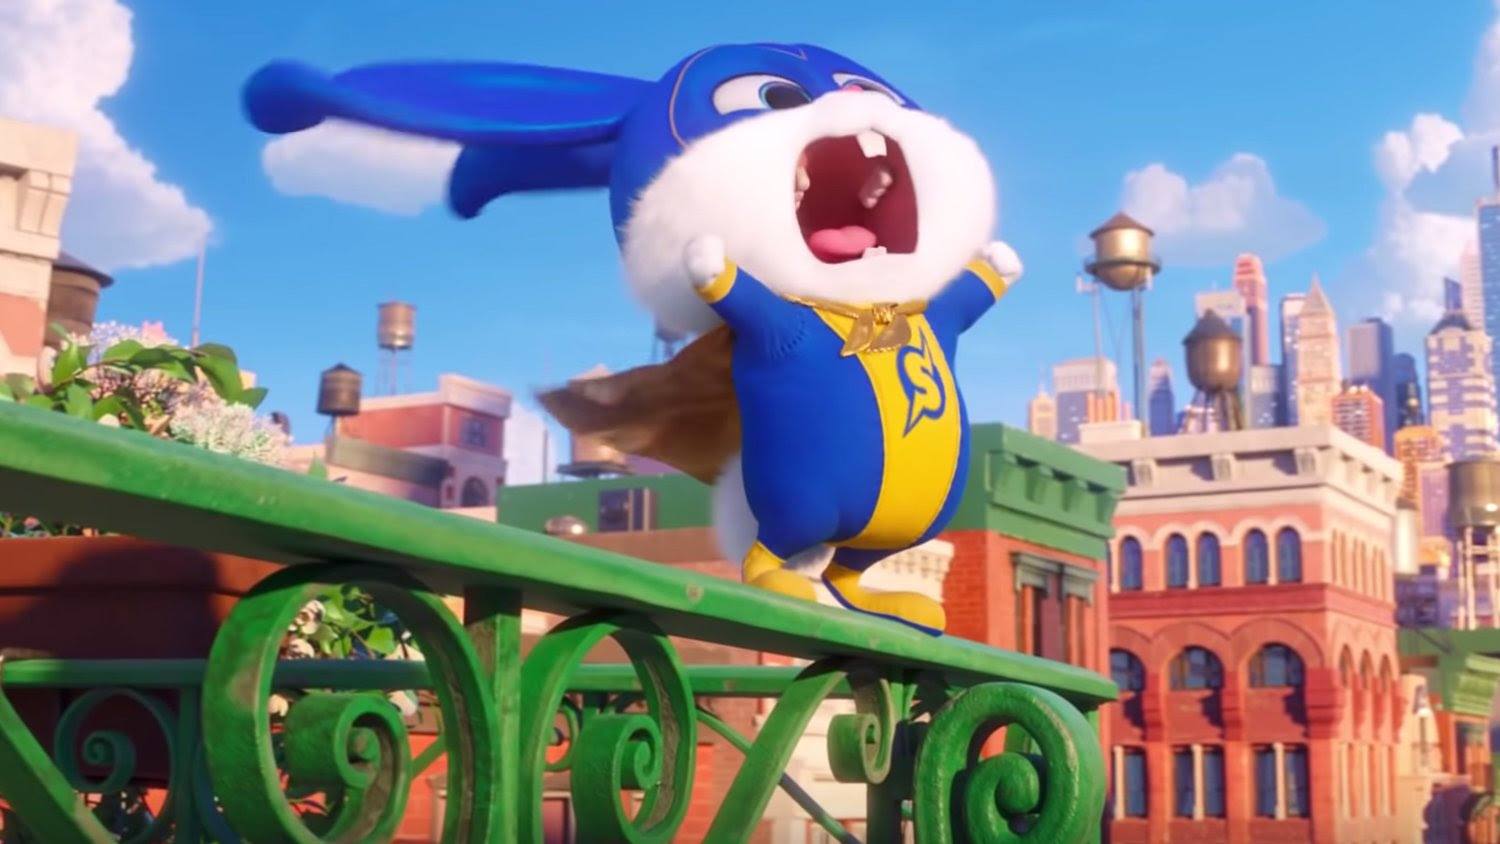 The Snowball Trailer Has Been Released For The Secret Life Of Pets